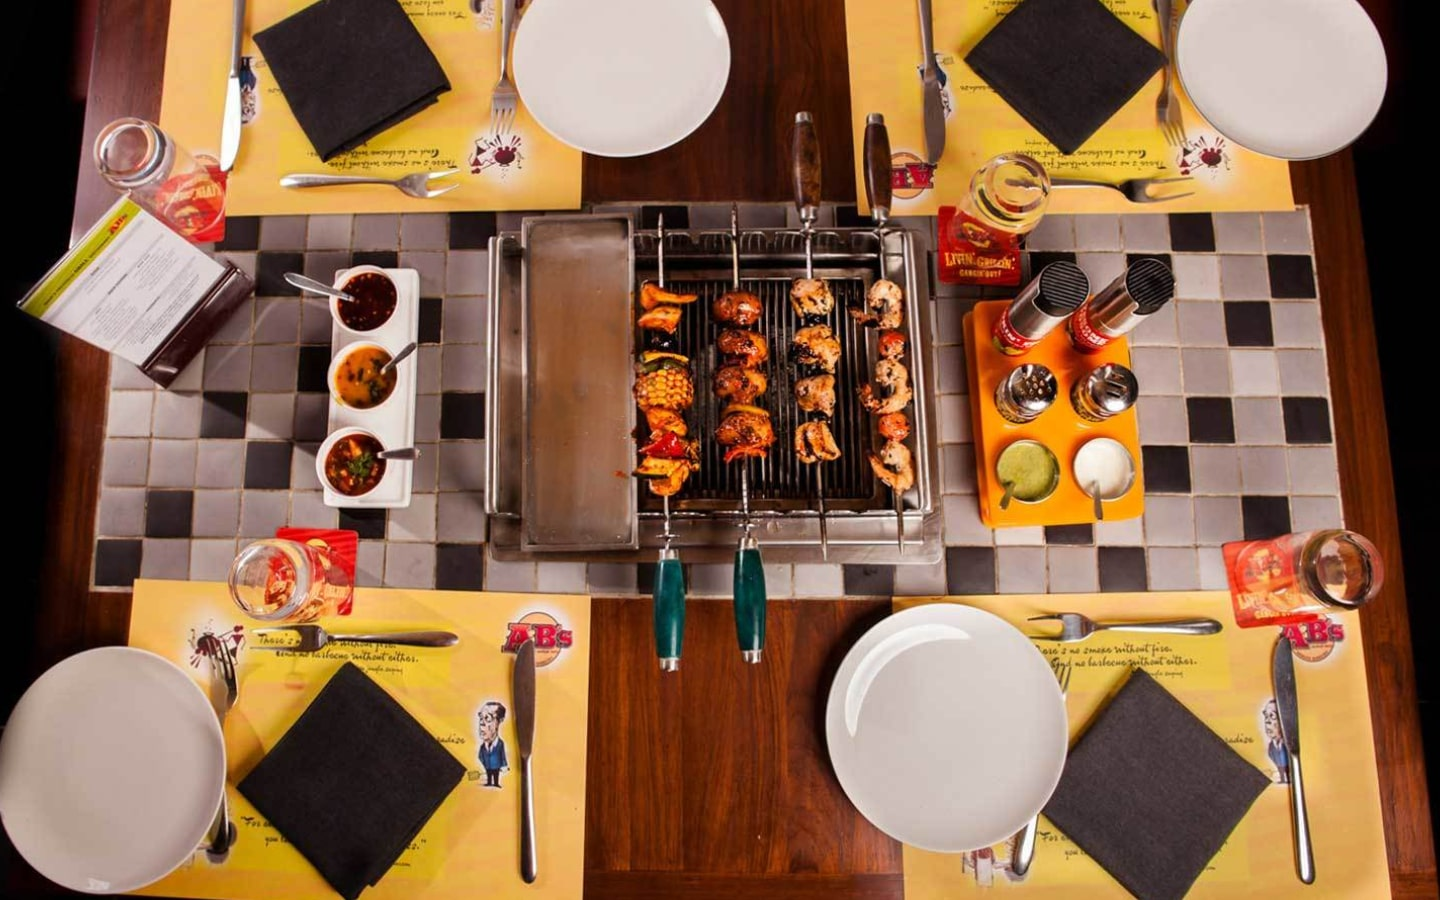 View of the table grill at Absolute Barbecues Sheikh Zayed Road restaurant